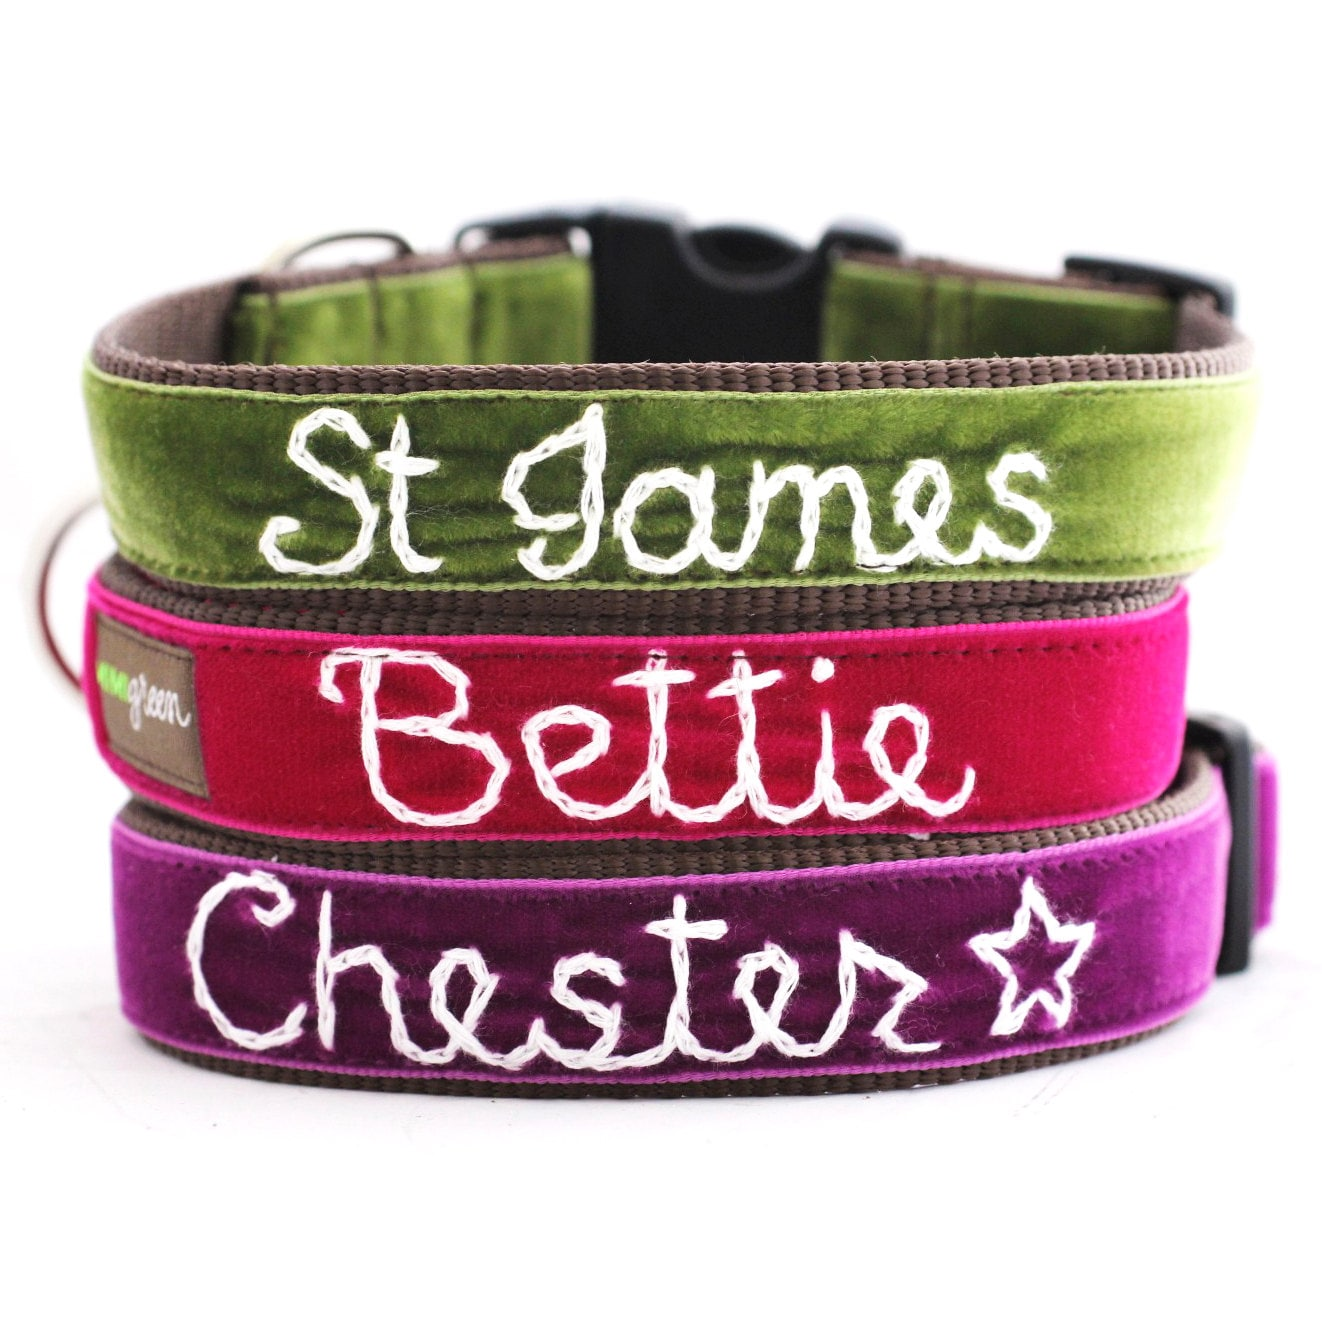 Personalized Nylon Dog Collar, Custom Embroidered with Pet Name & Phone  Number. 4 Adjustable